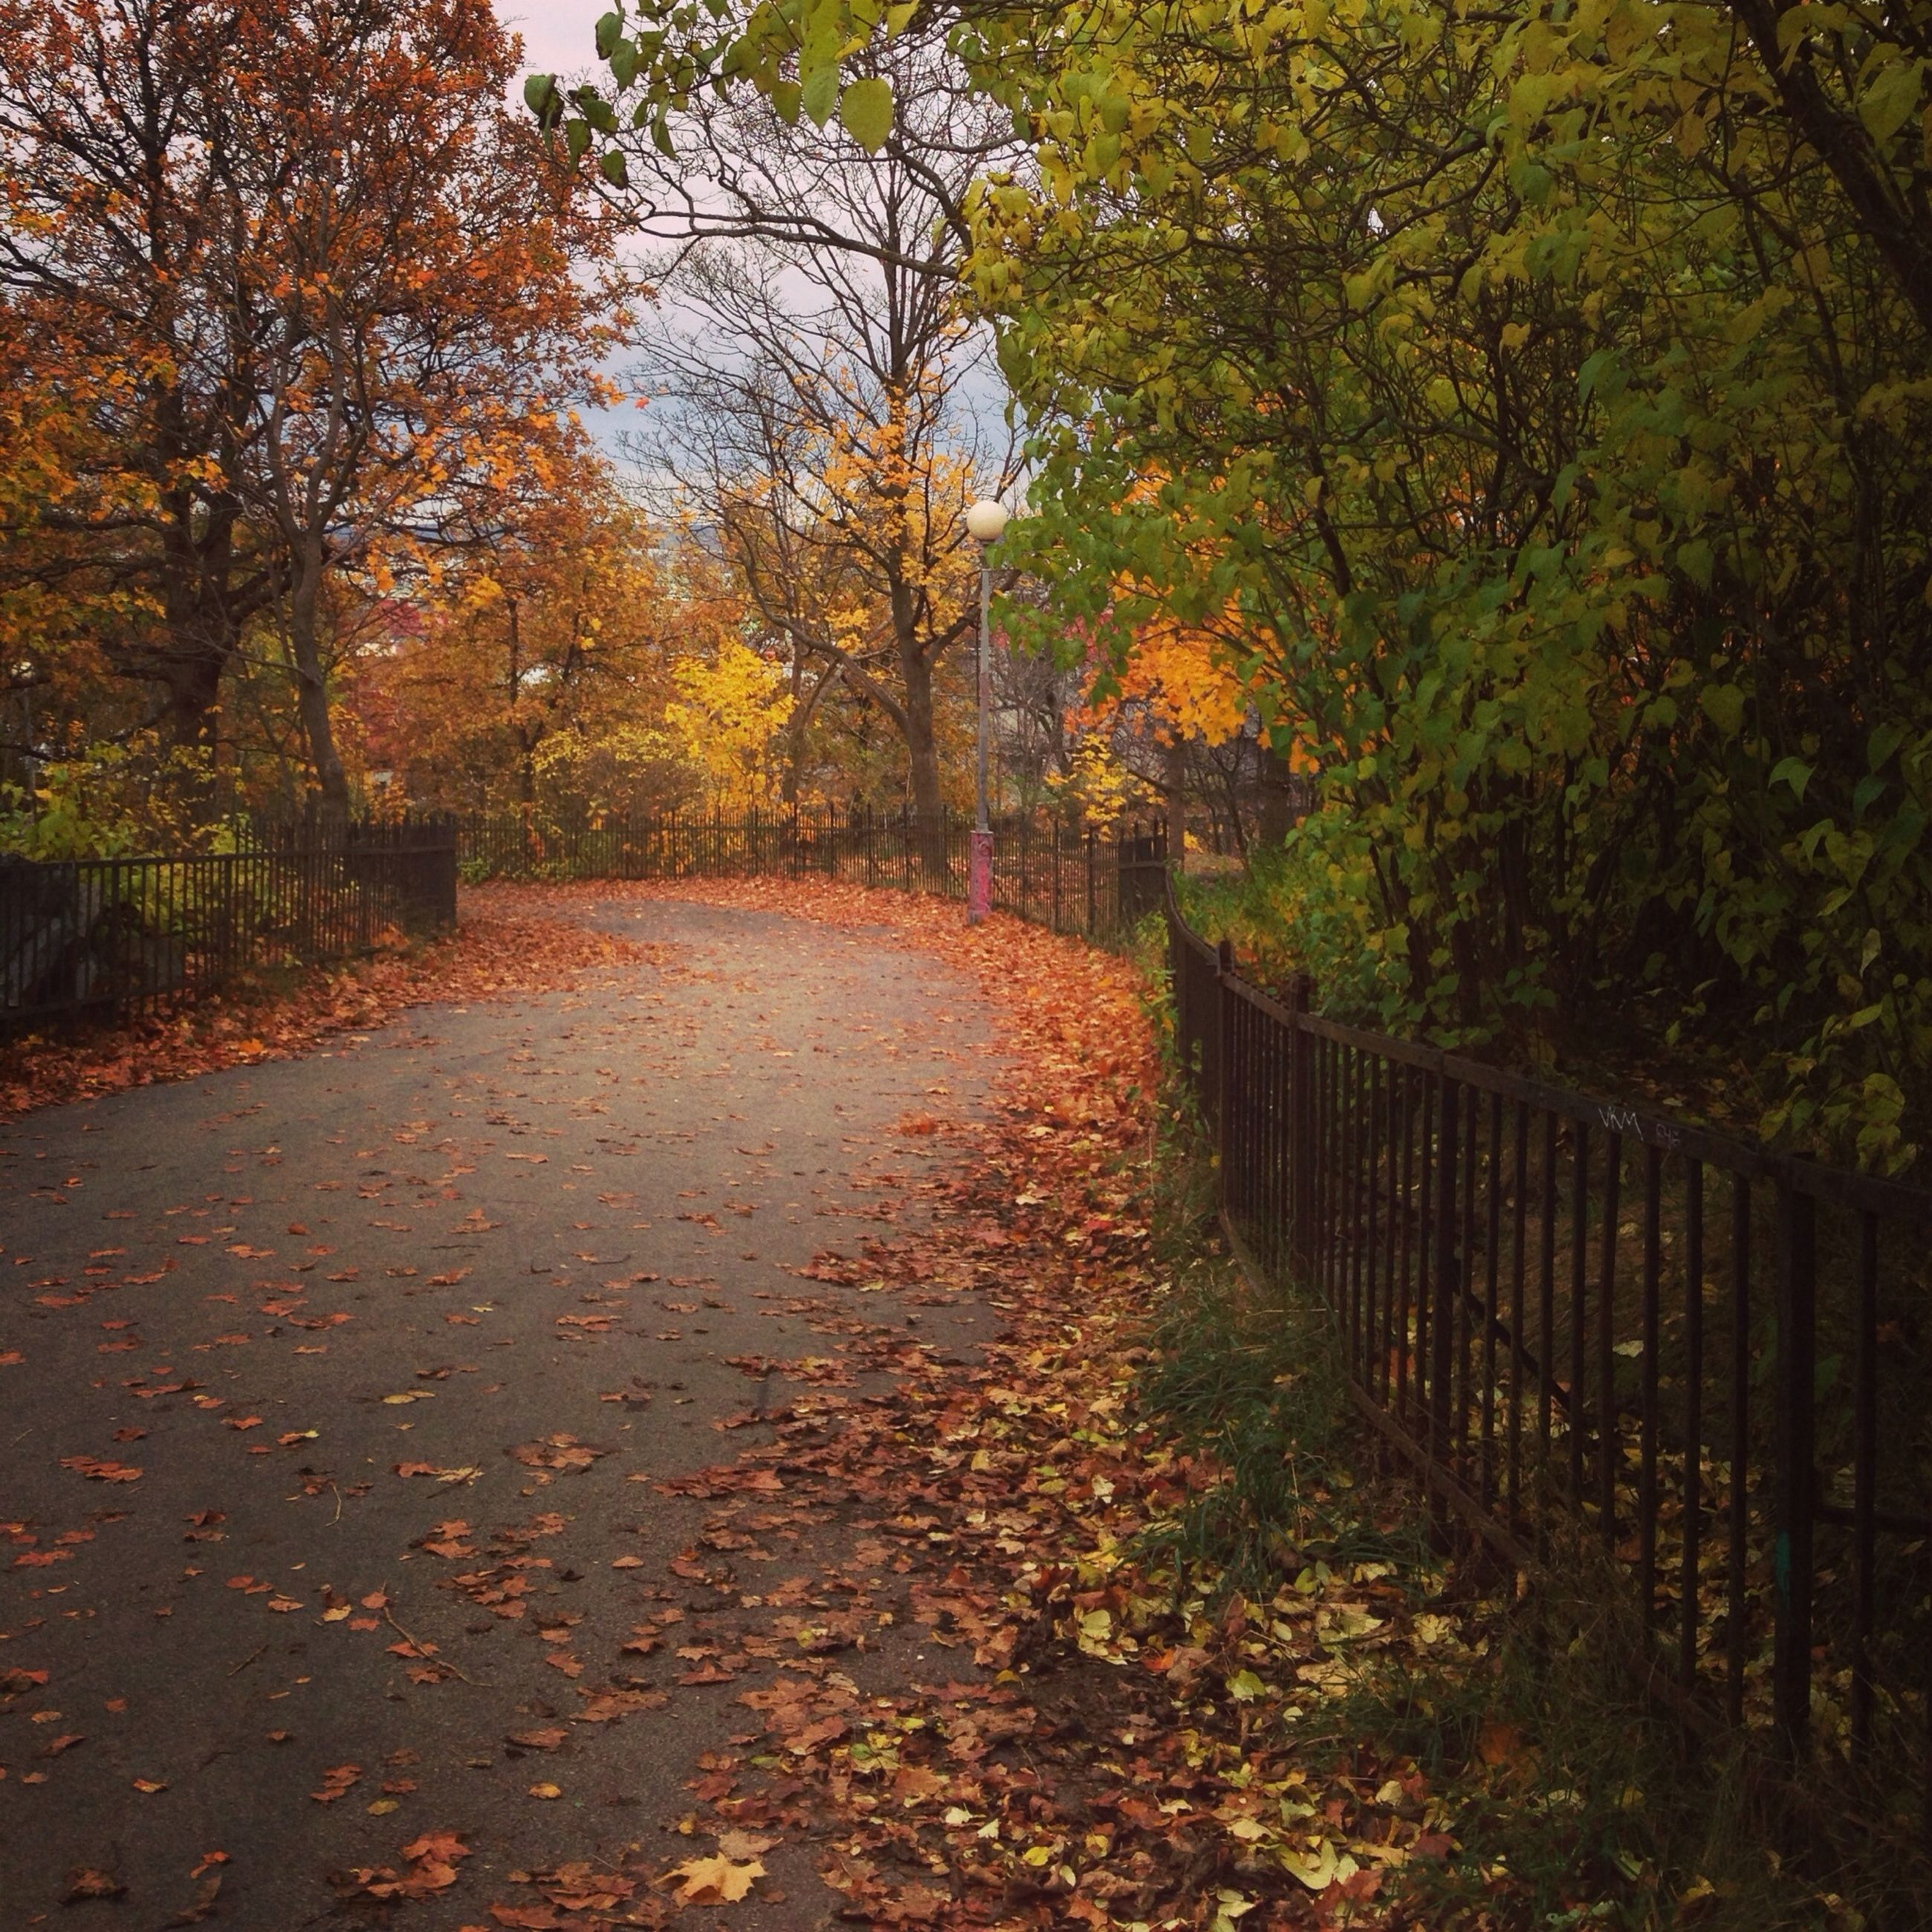 tree, autumn, the way forward, change, season, leaf, tranquility, diminishing perspective, nature, vanishing point, tranquil scene, fallen, branch, beauty in nature, orange color, footpath, transportation, growth, forest, road